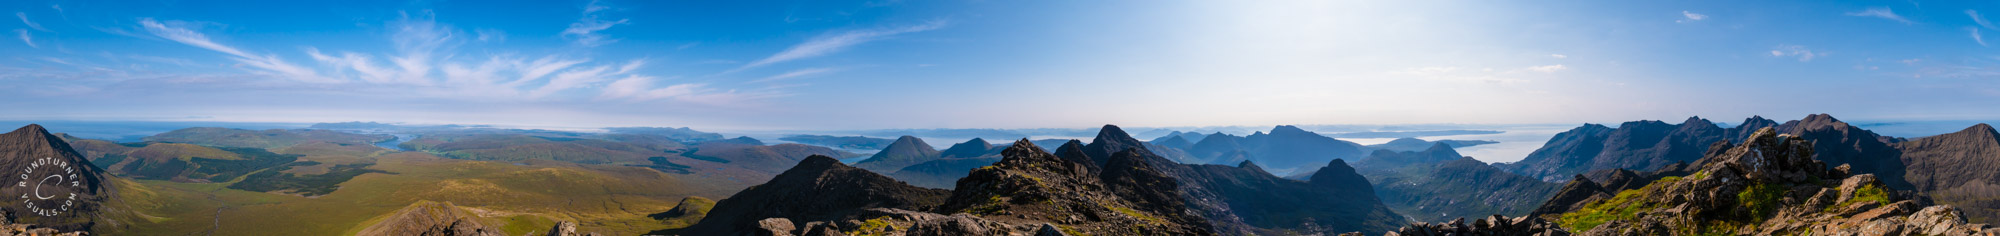 Over 360 degrees panorama from Bruach na Frìthe